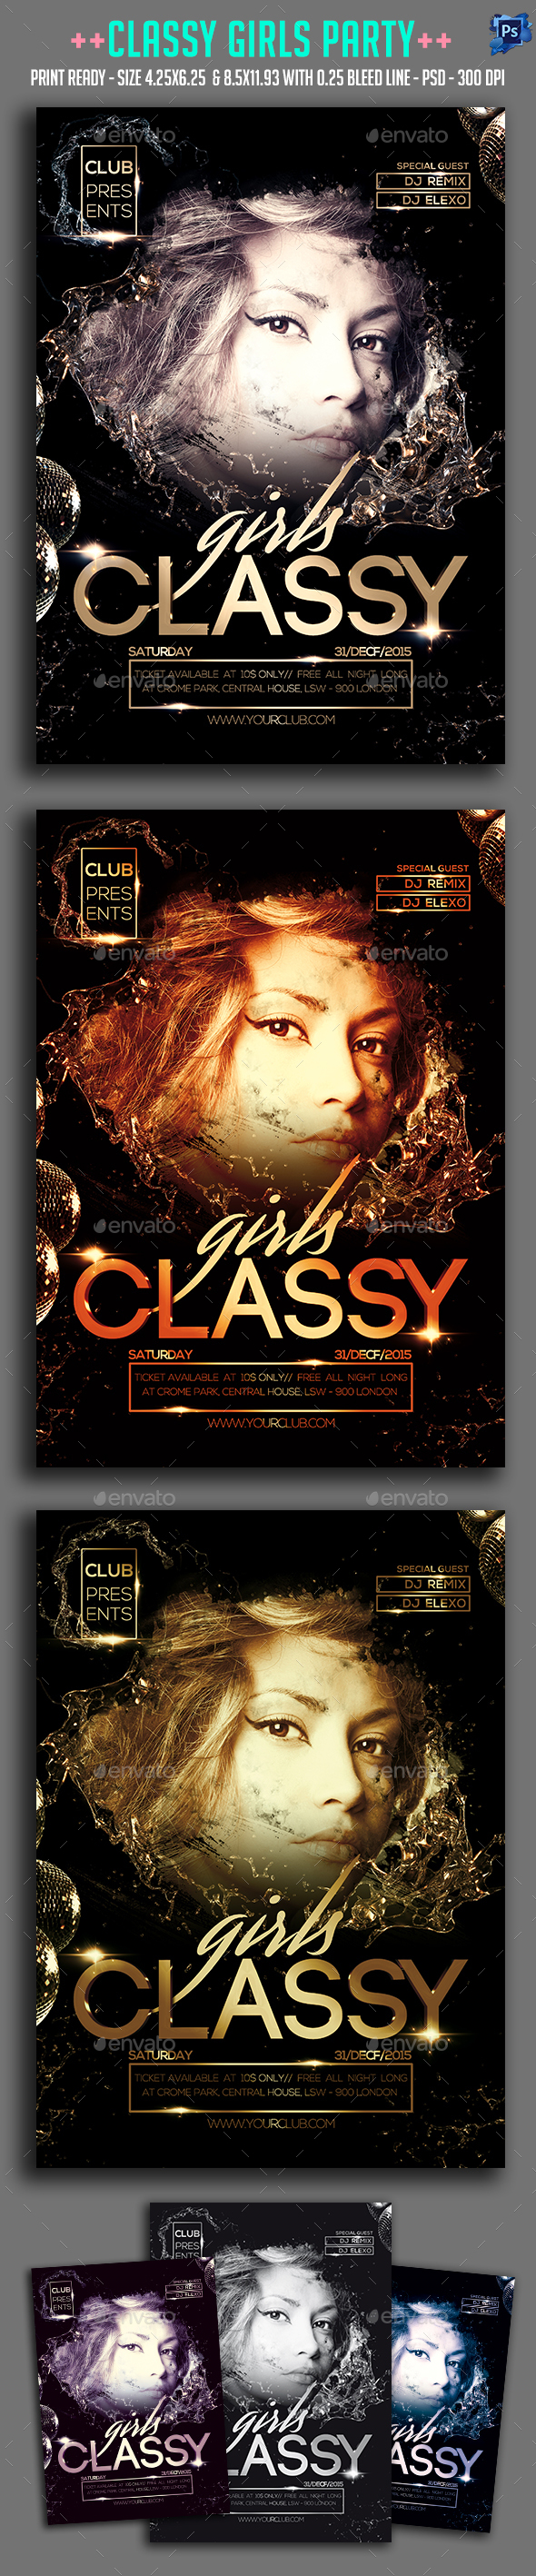 Classy Girl Party Flyer  - Clubs & Parties Events